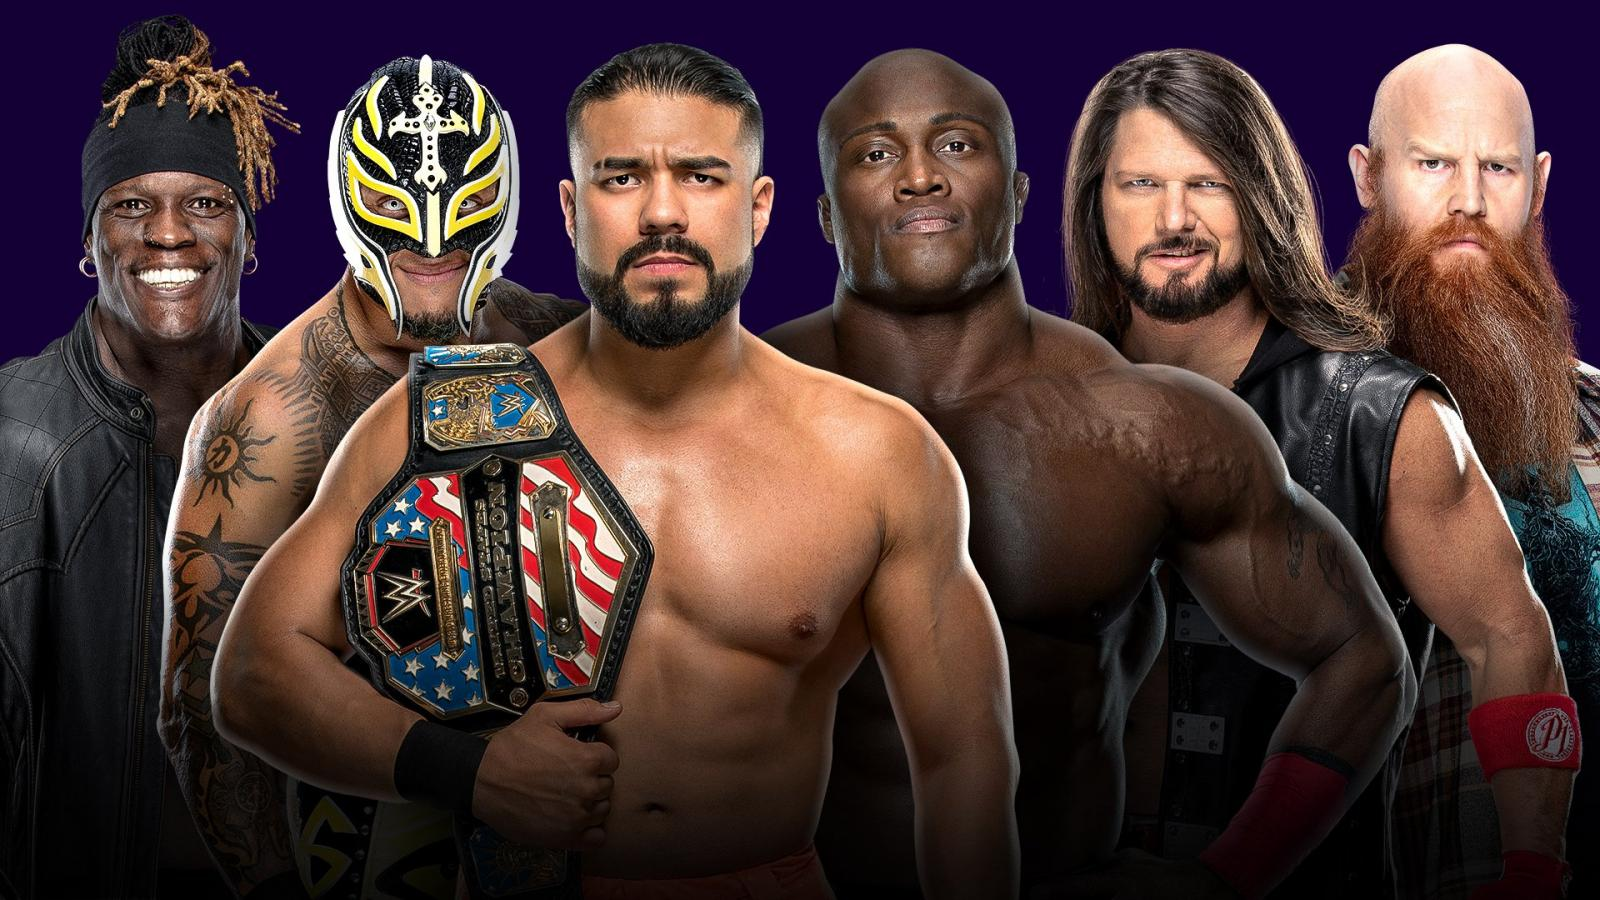 Rey Mysterio replaces Rusev in Tuwaiq Trophy Gauntlet match at WWE Super ShowDown 2020